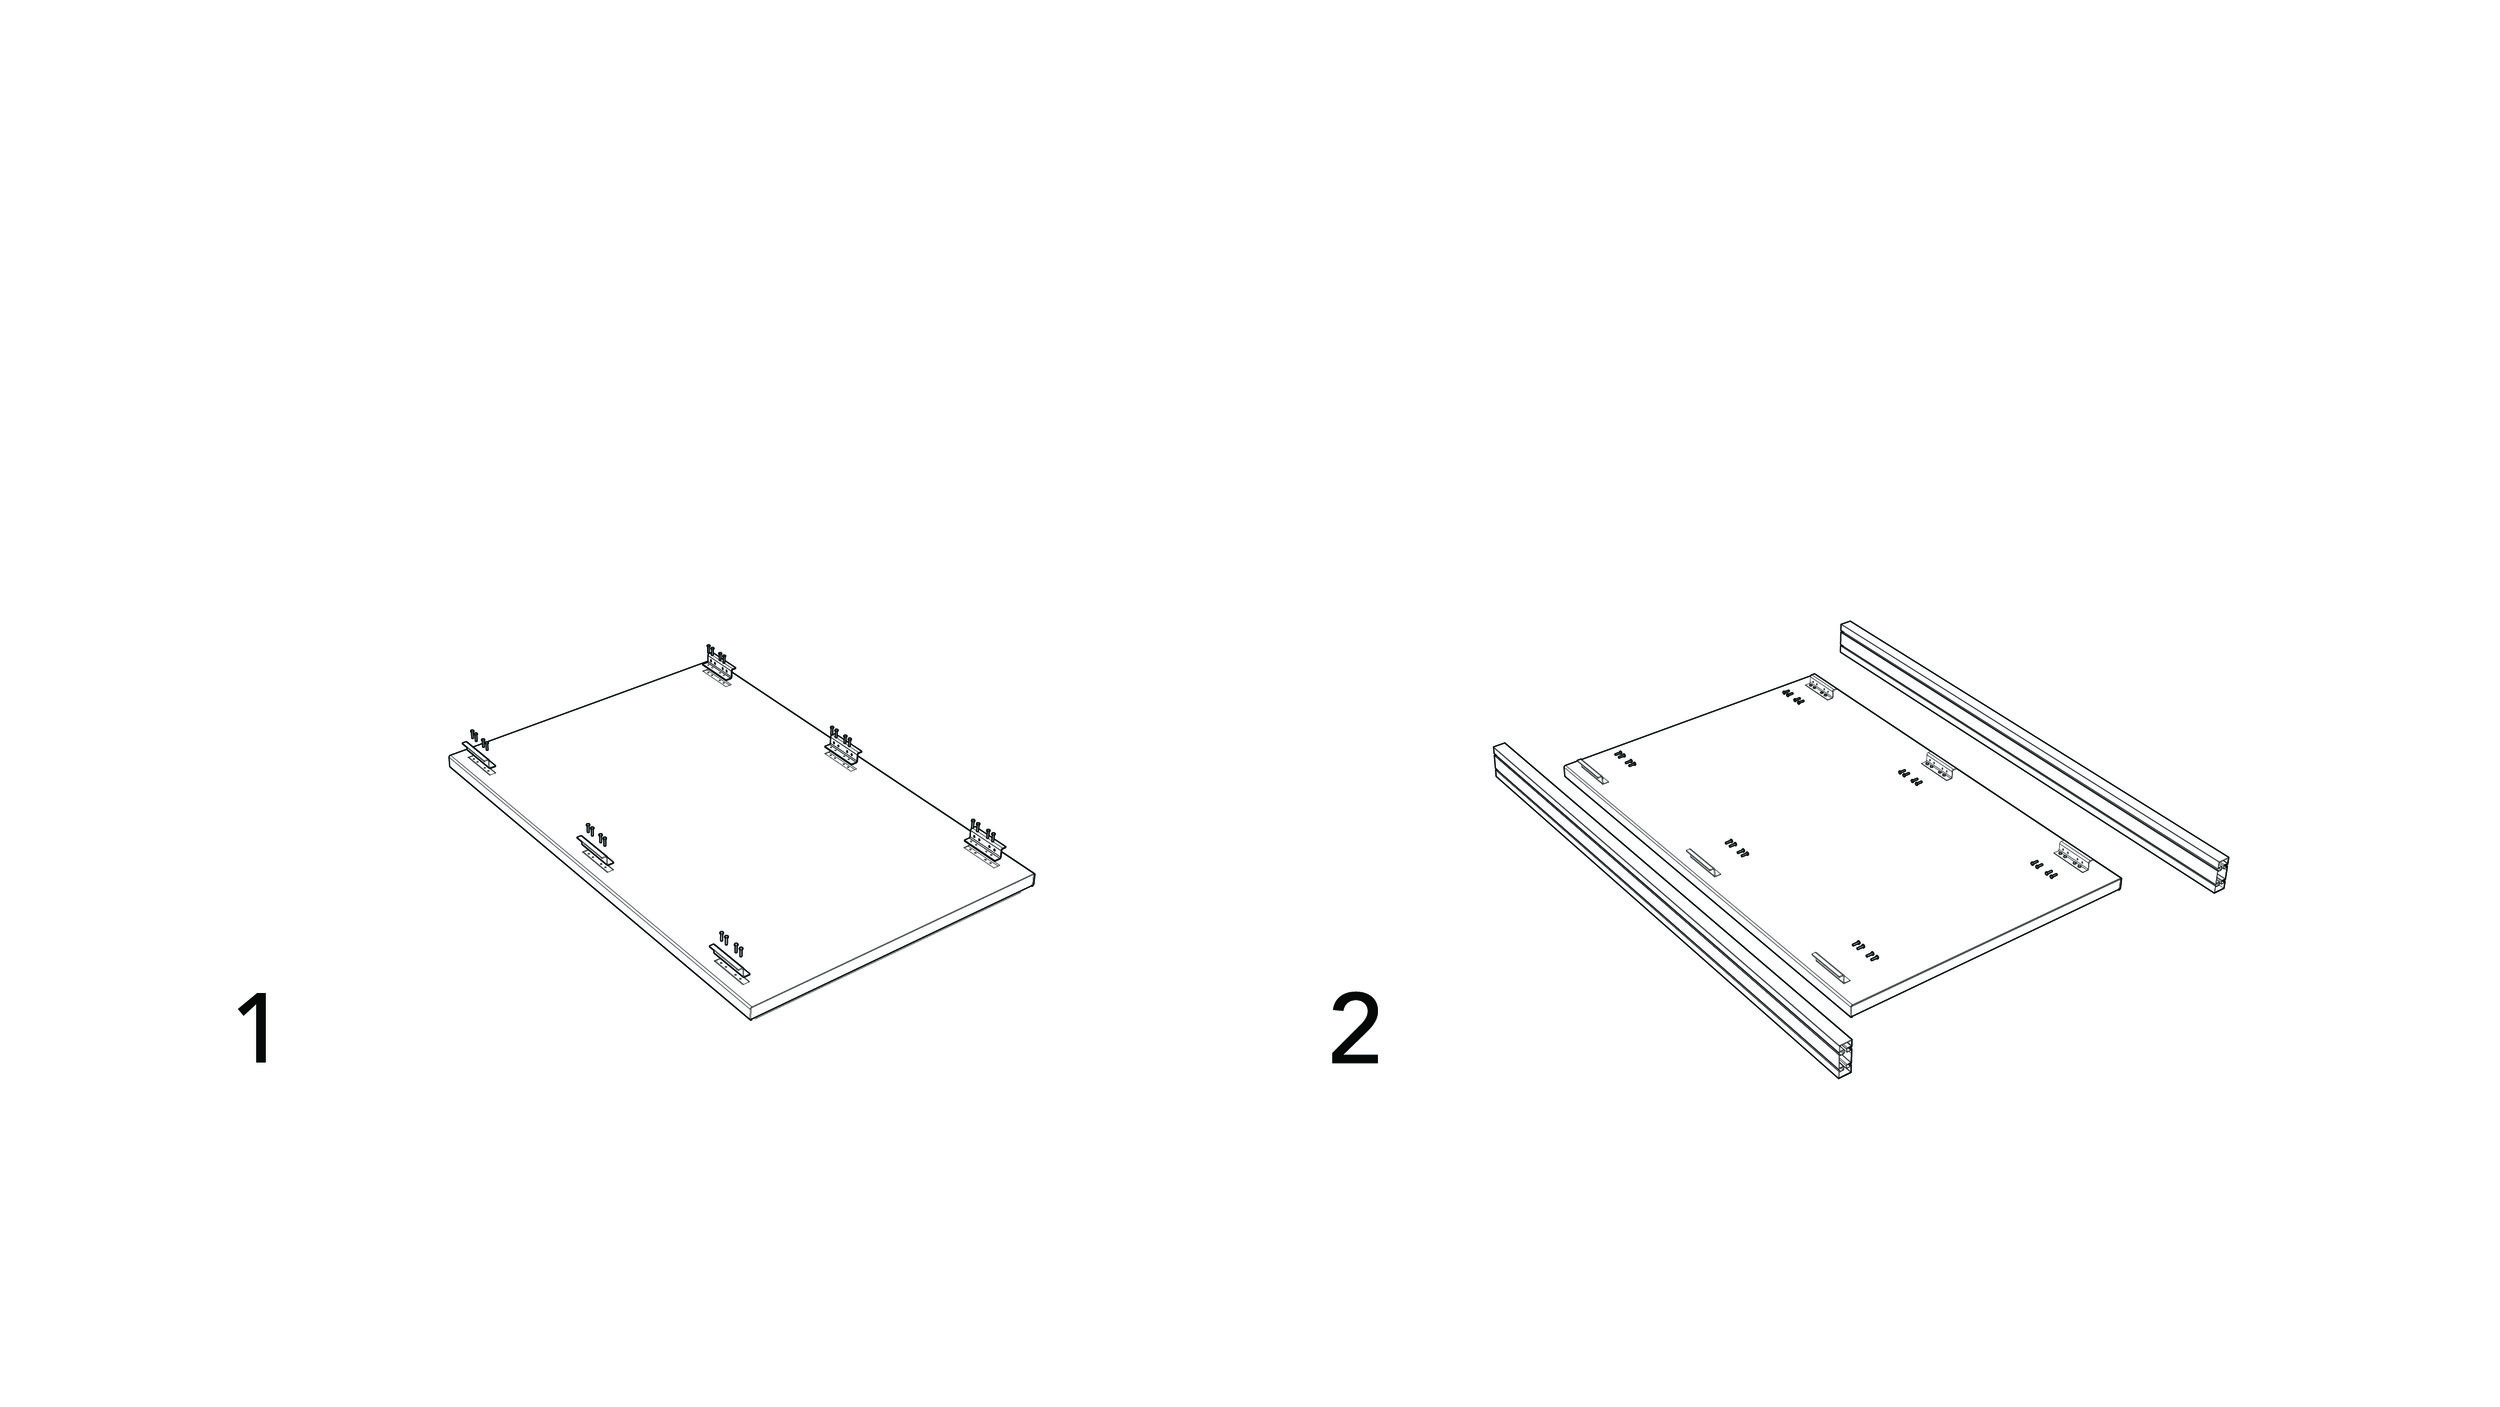 Ikea instructions-03.jpg